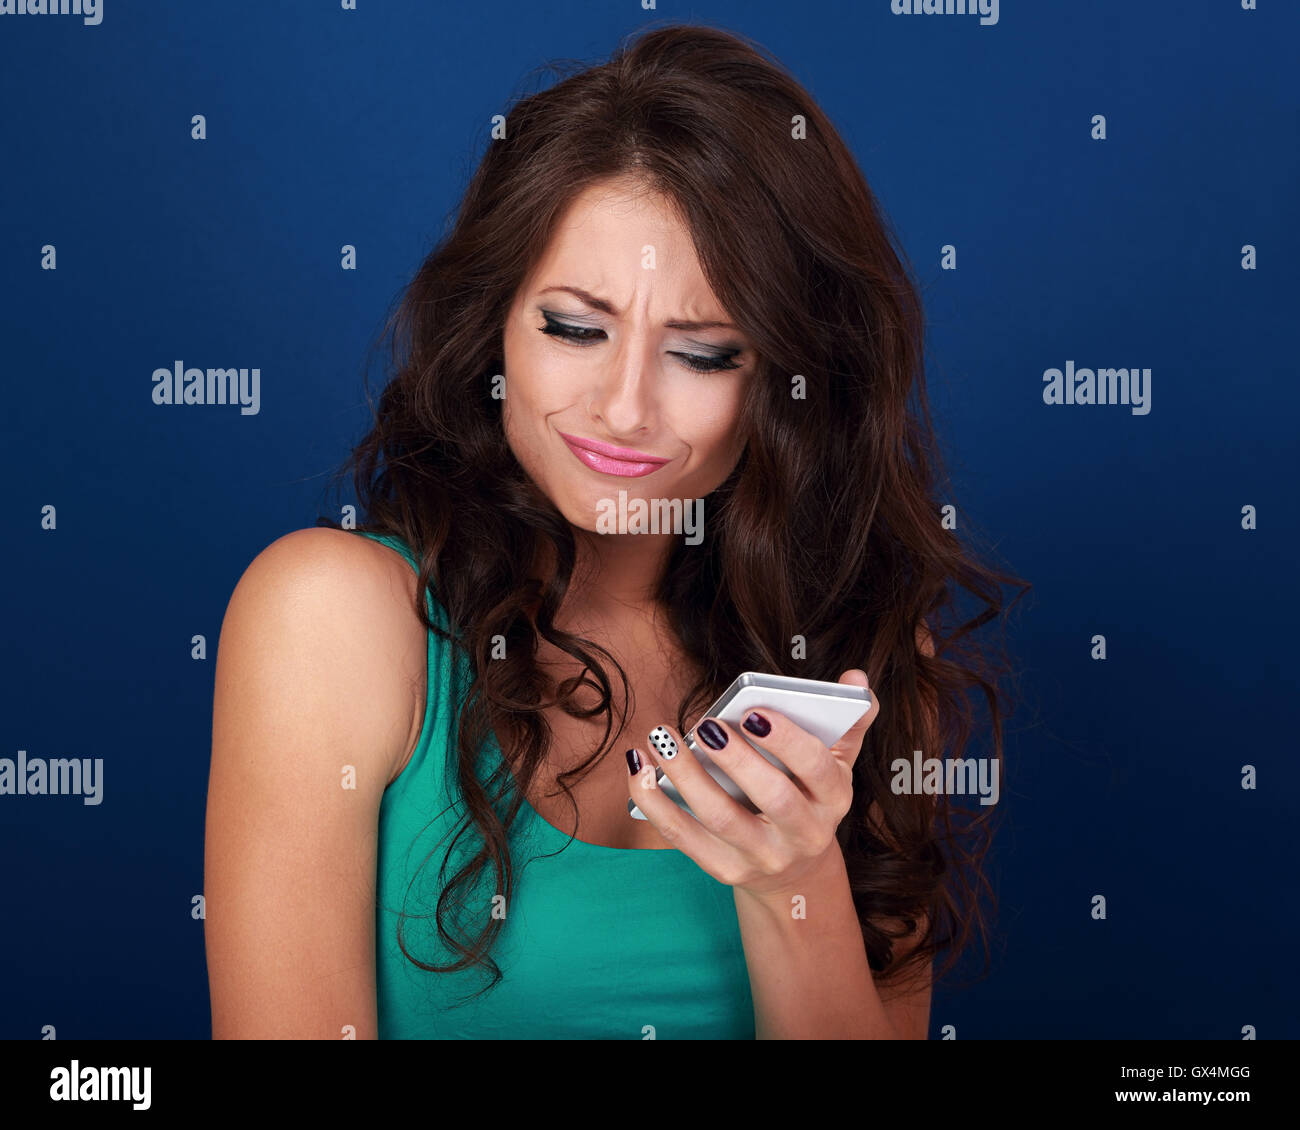 Cranky surprising grimacing young woman reading sms on mobile phone holding it in hand on blue background - Stock Image